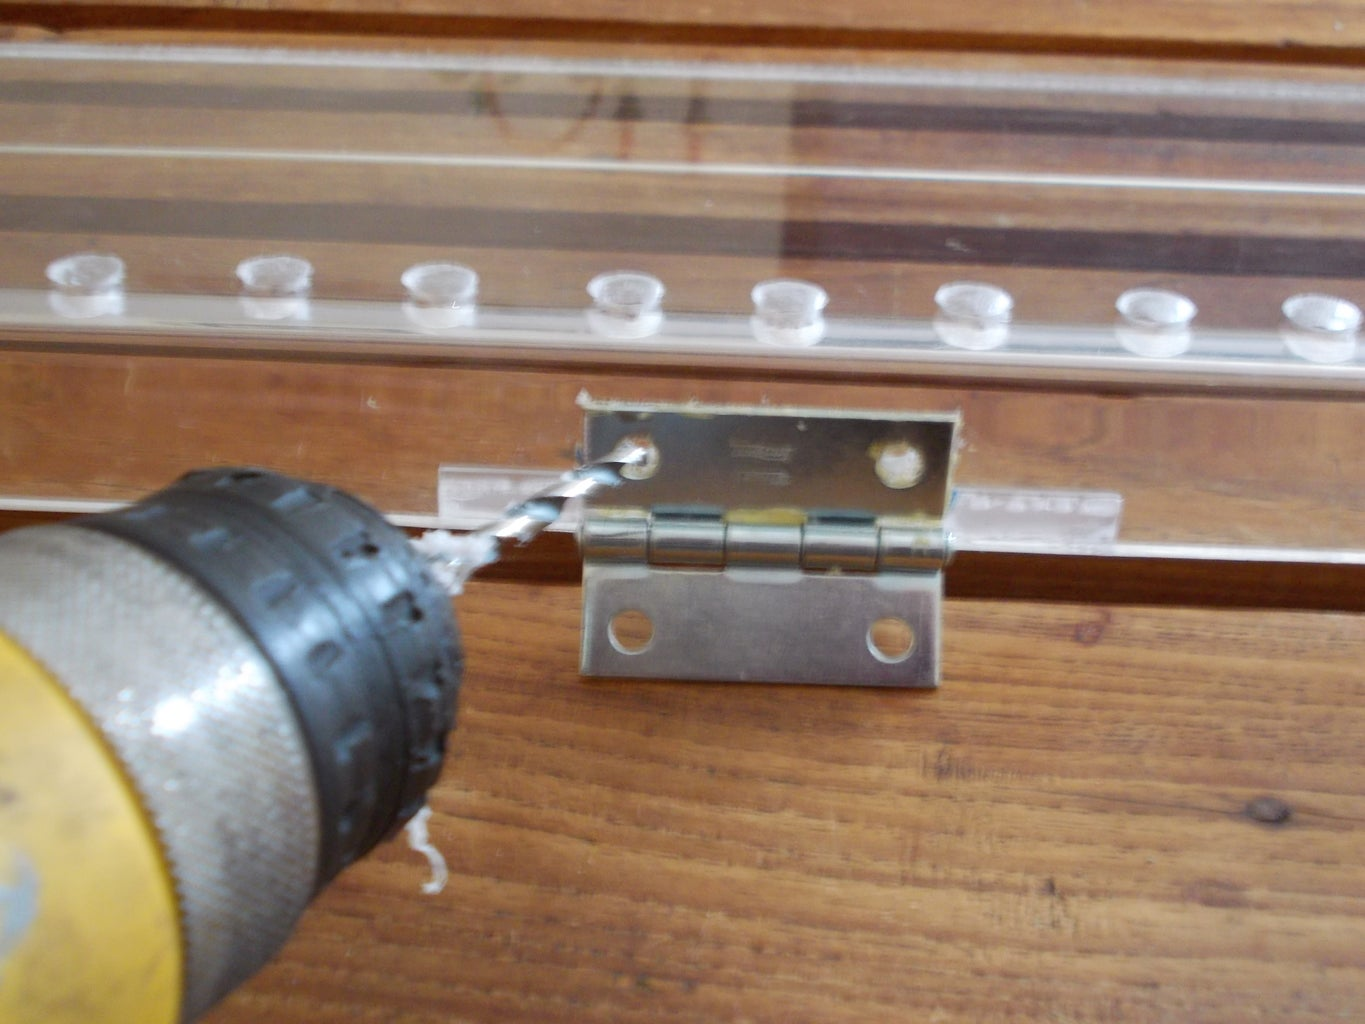 Drill Some Holes and Insert Bolts